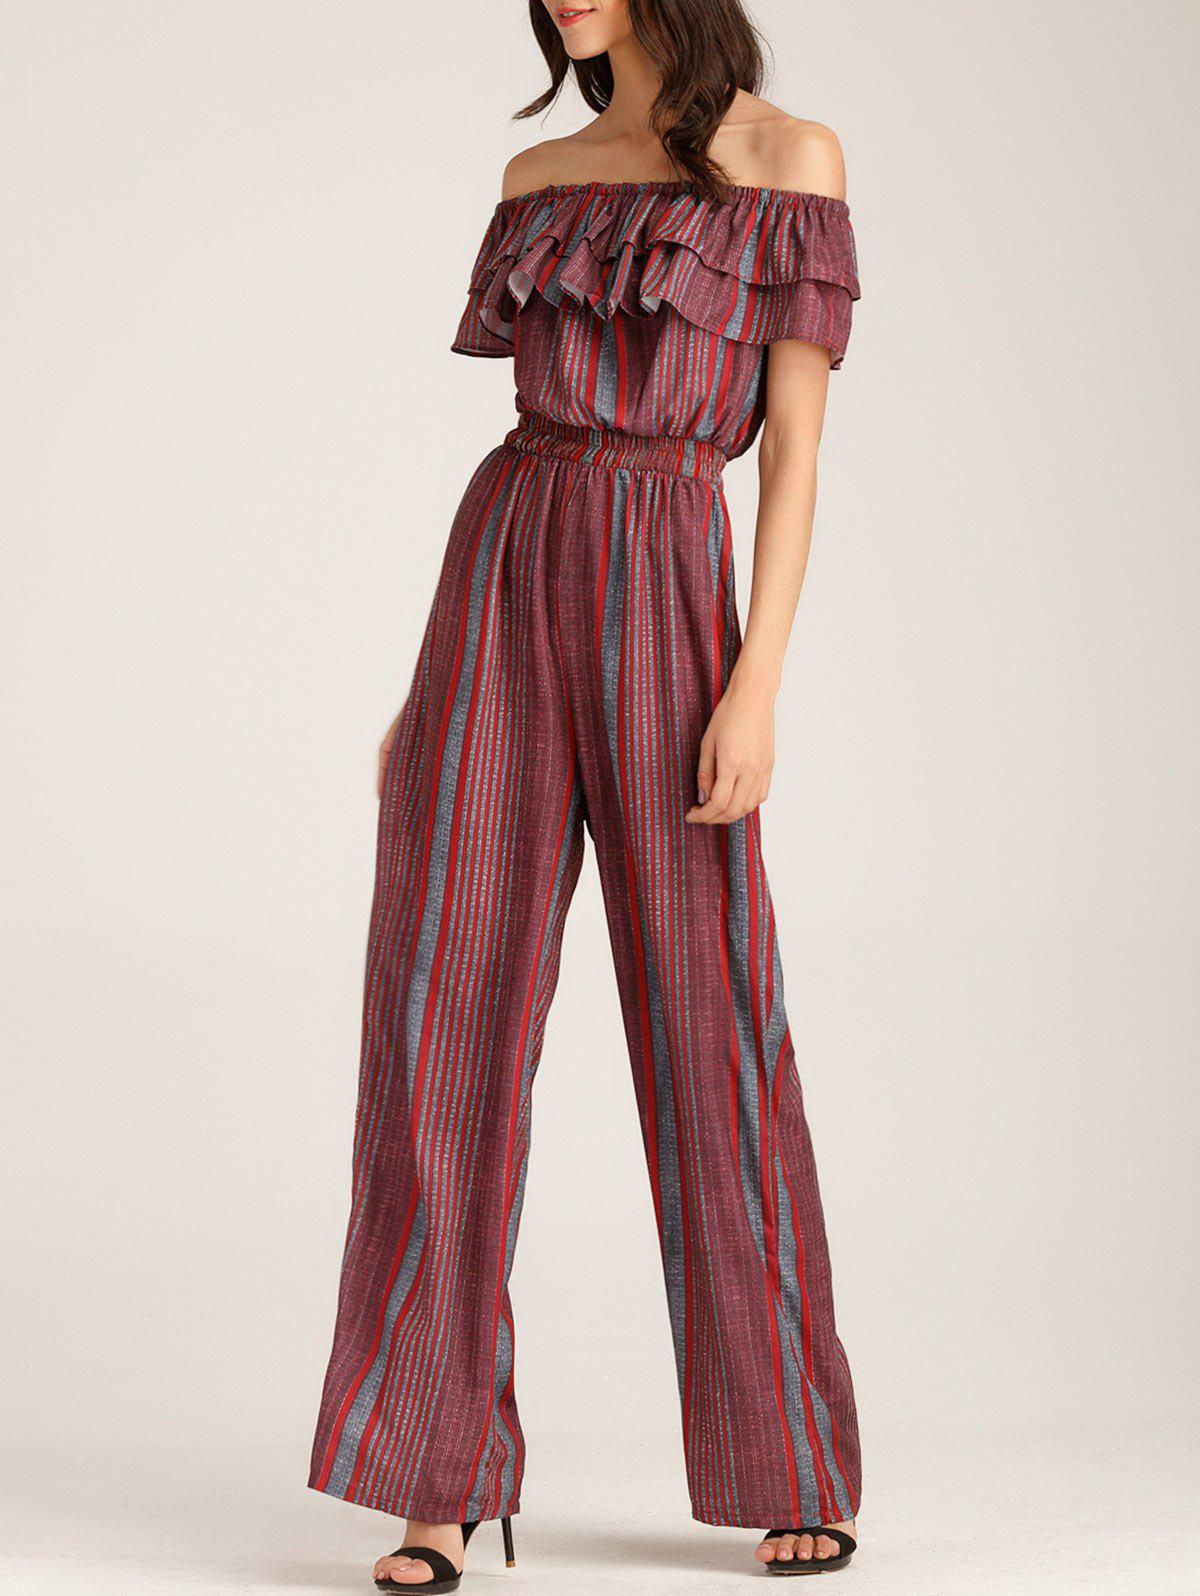 Ruffle Layer Off The Shoulder Striped Jumpsuit - GRAY/RED L